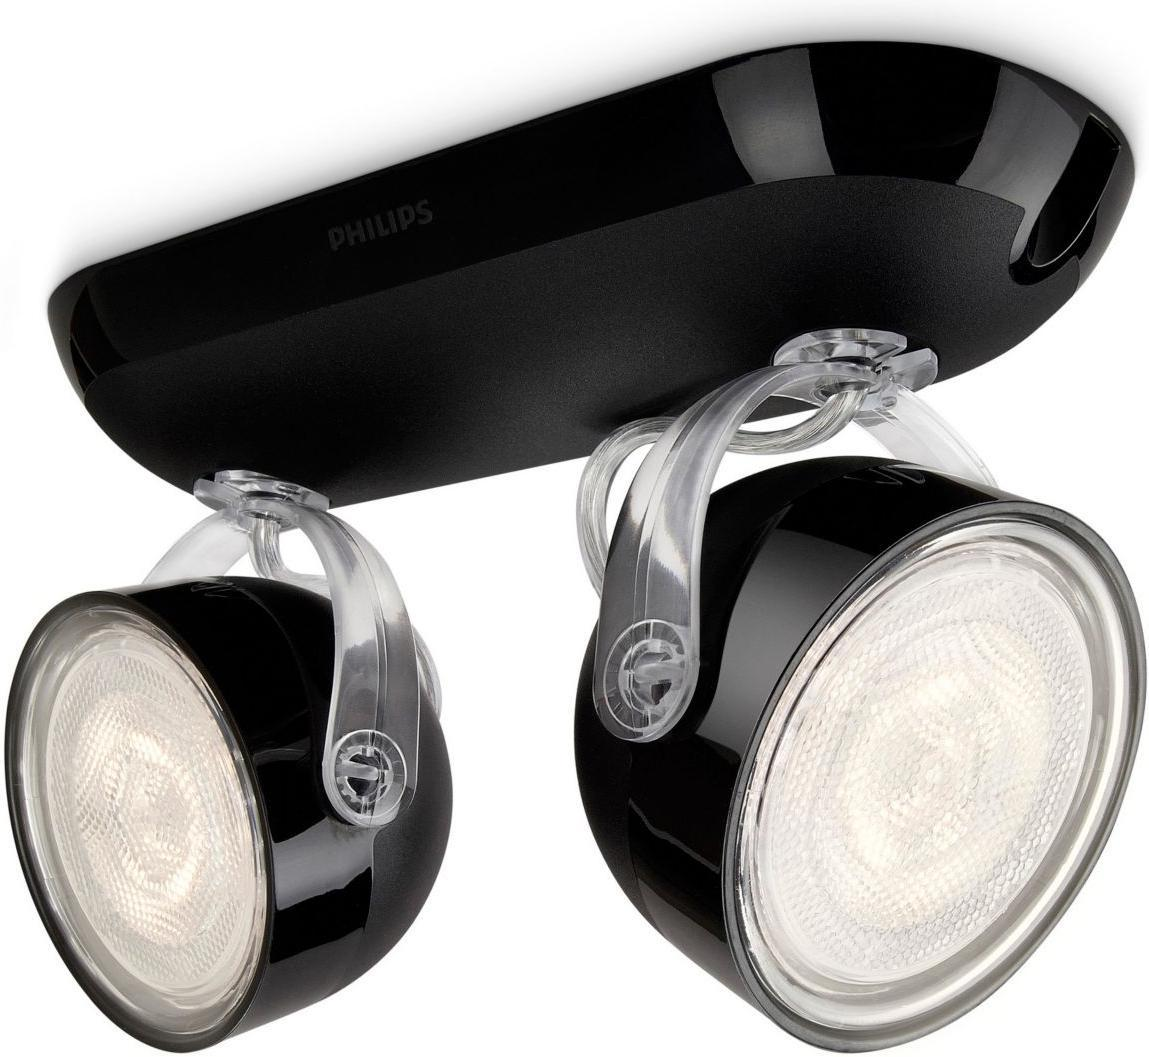 Philips LED Spotlicht 2x3W Dyna Warmweiß 53232/30/16